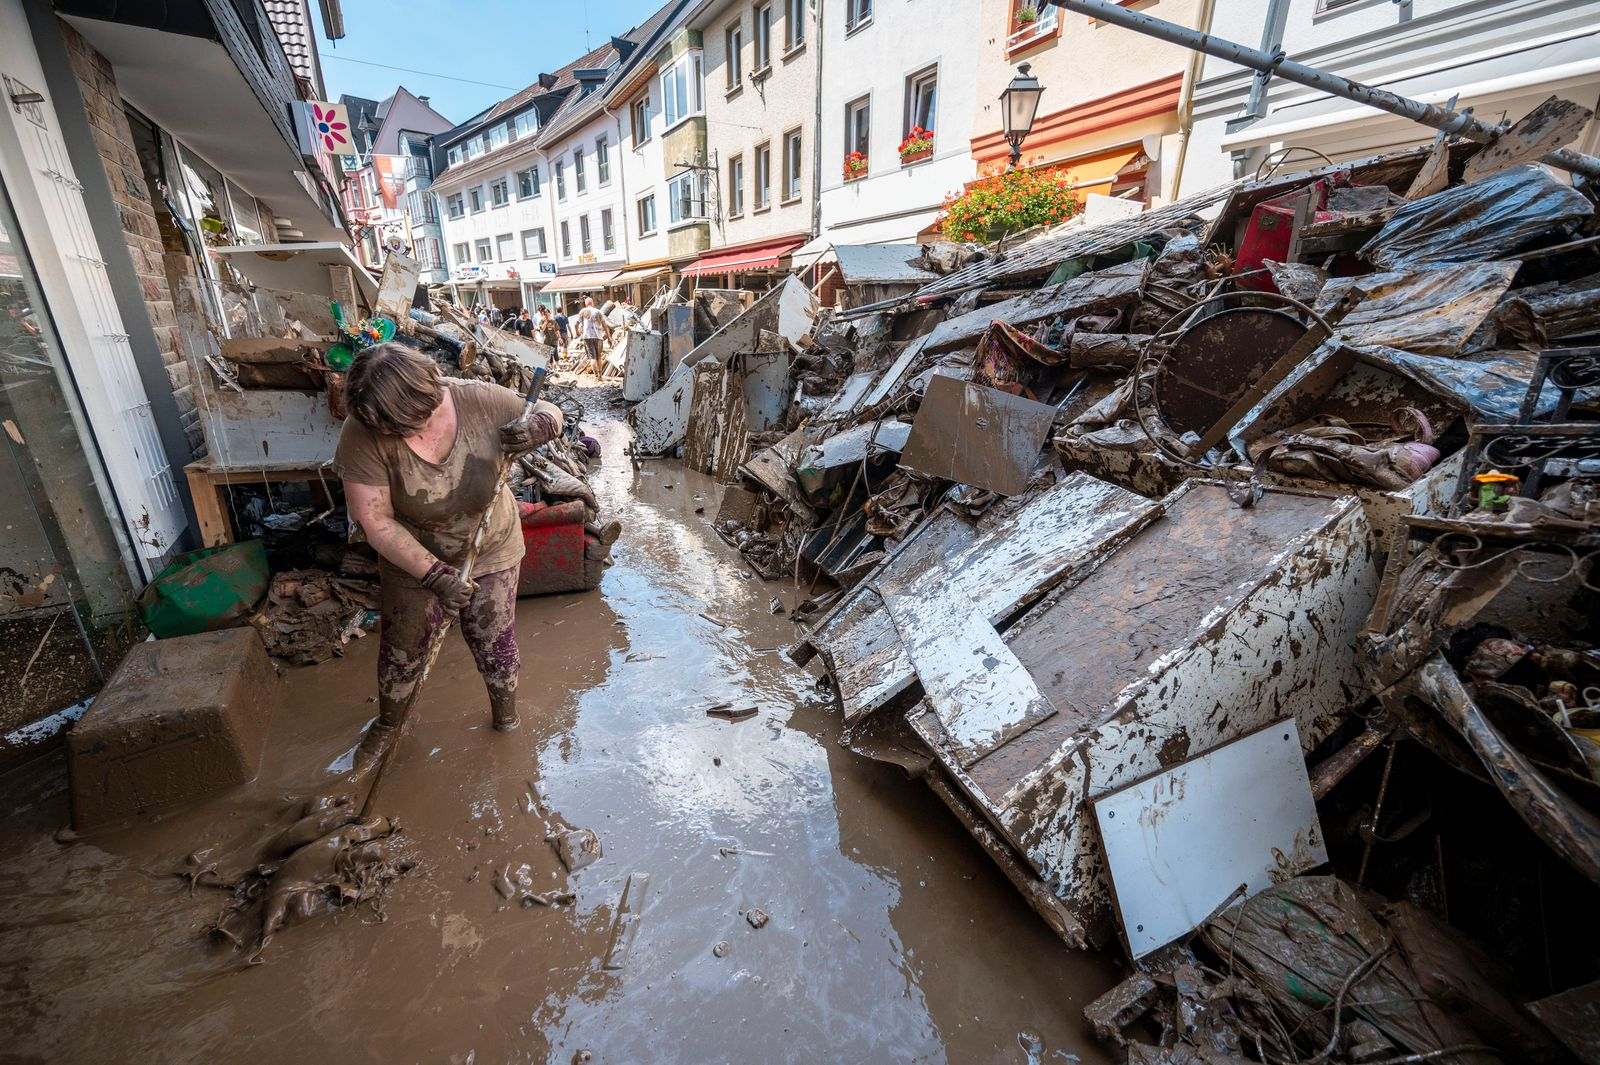 Germany Continues Evacuation And Rescue From Floods As Death Toll Rises